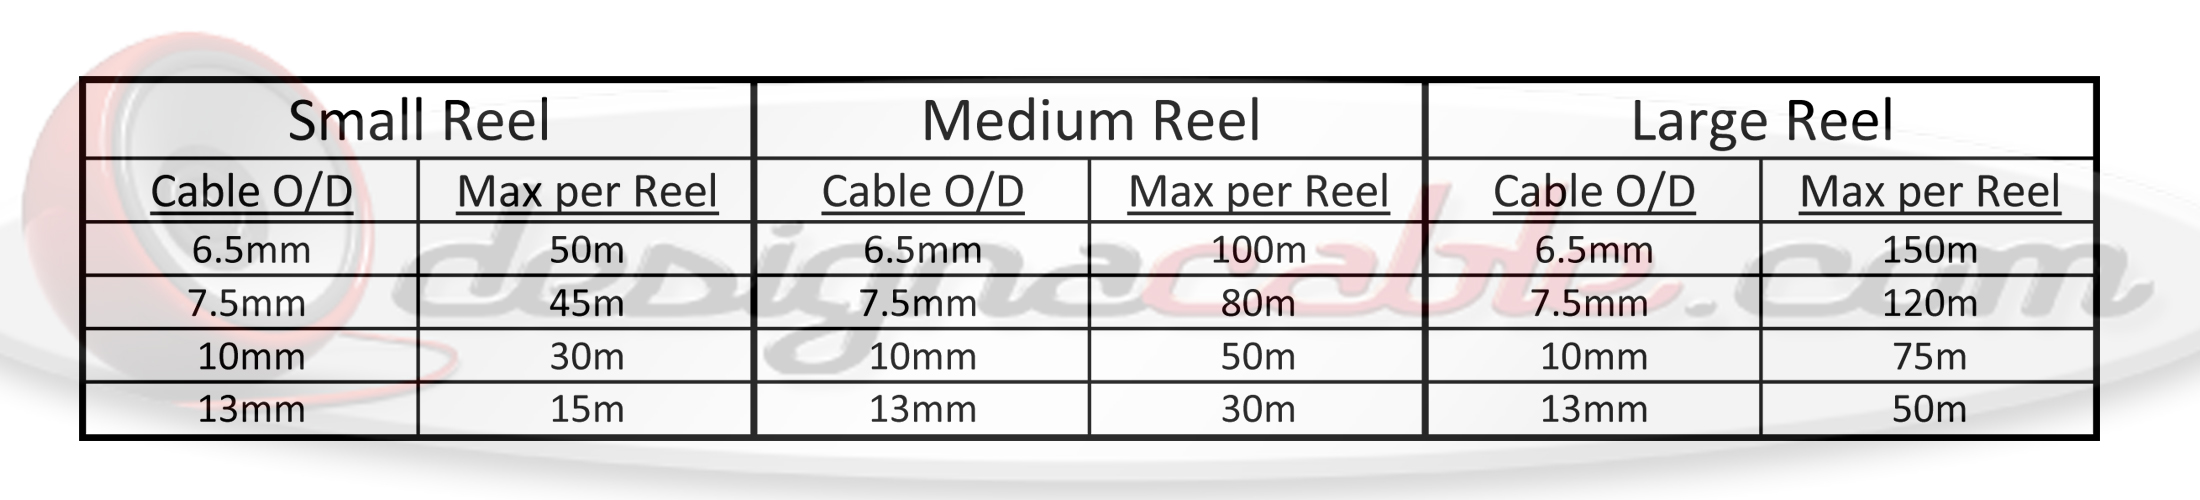 marcaddy reel dimensions